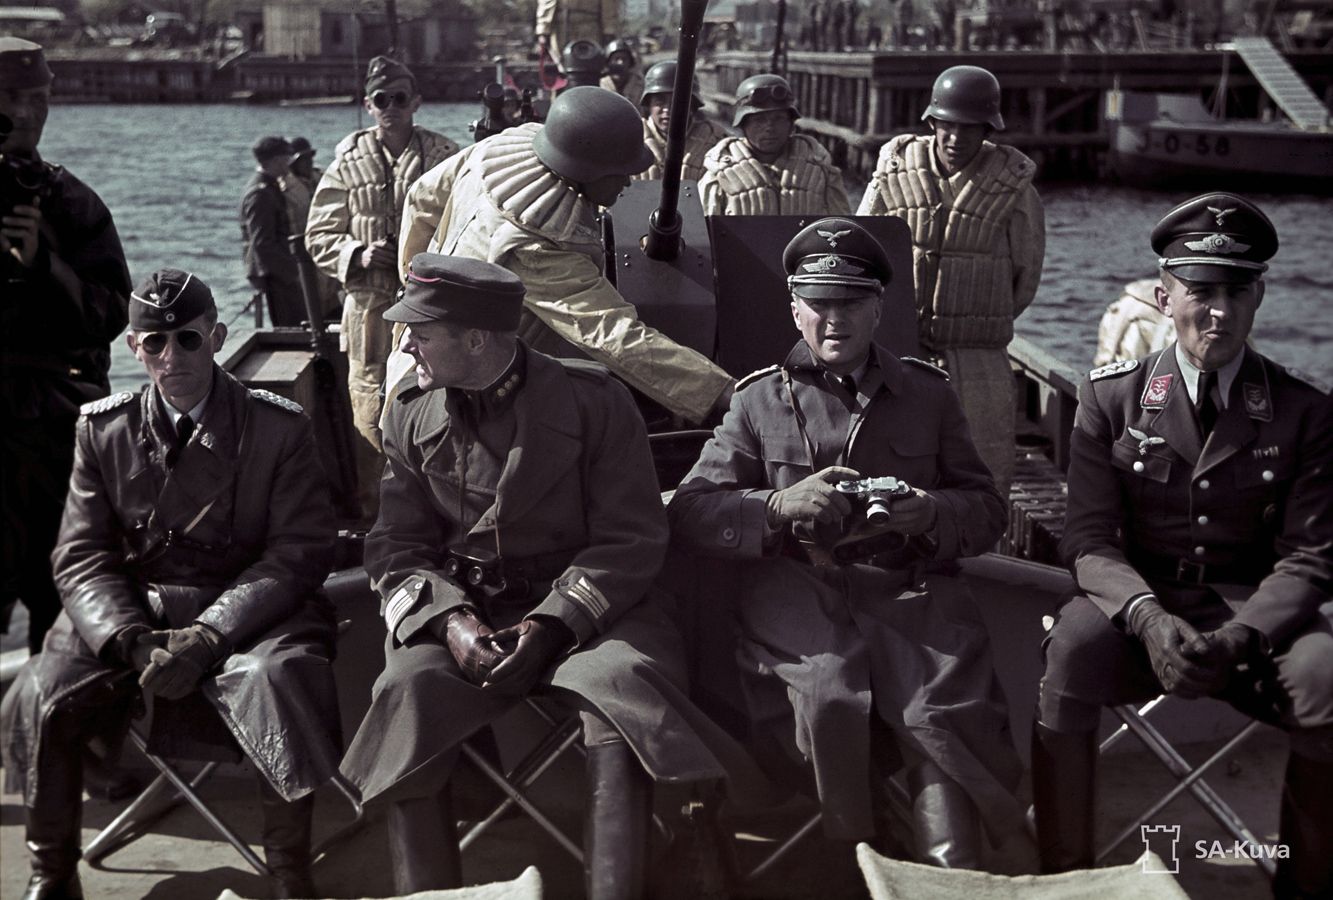 August 10, 1942. Ladoga. German officers